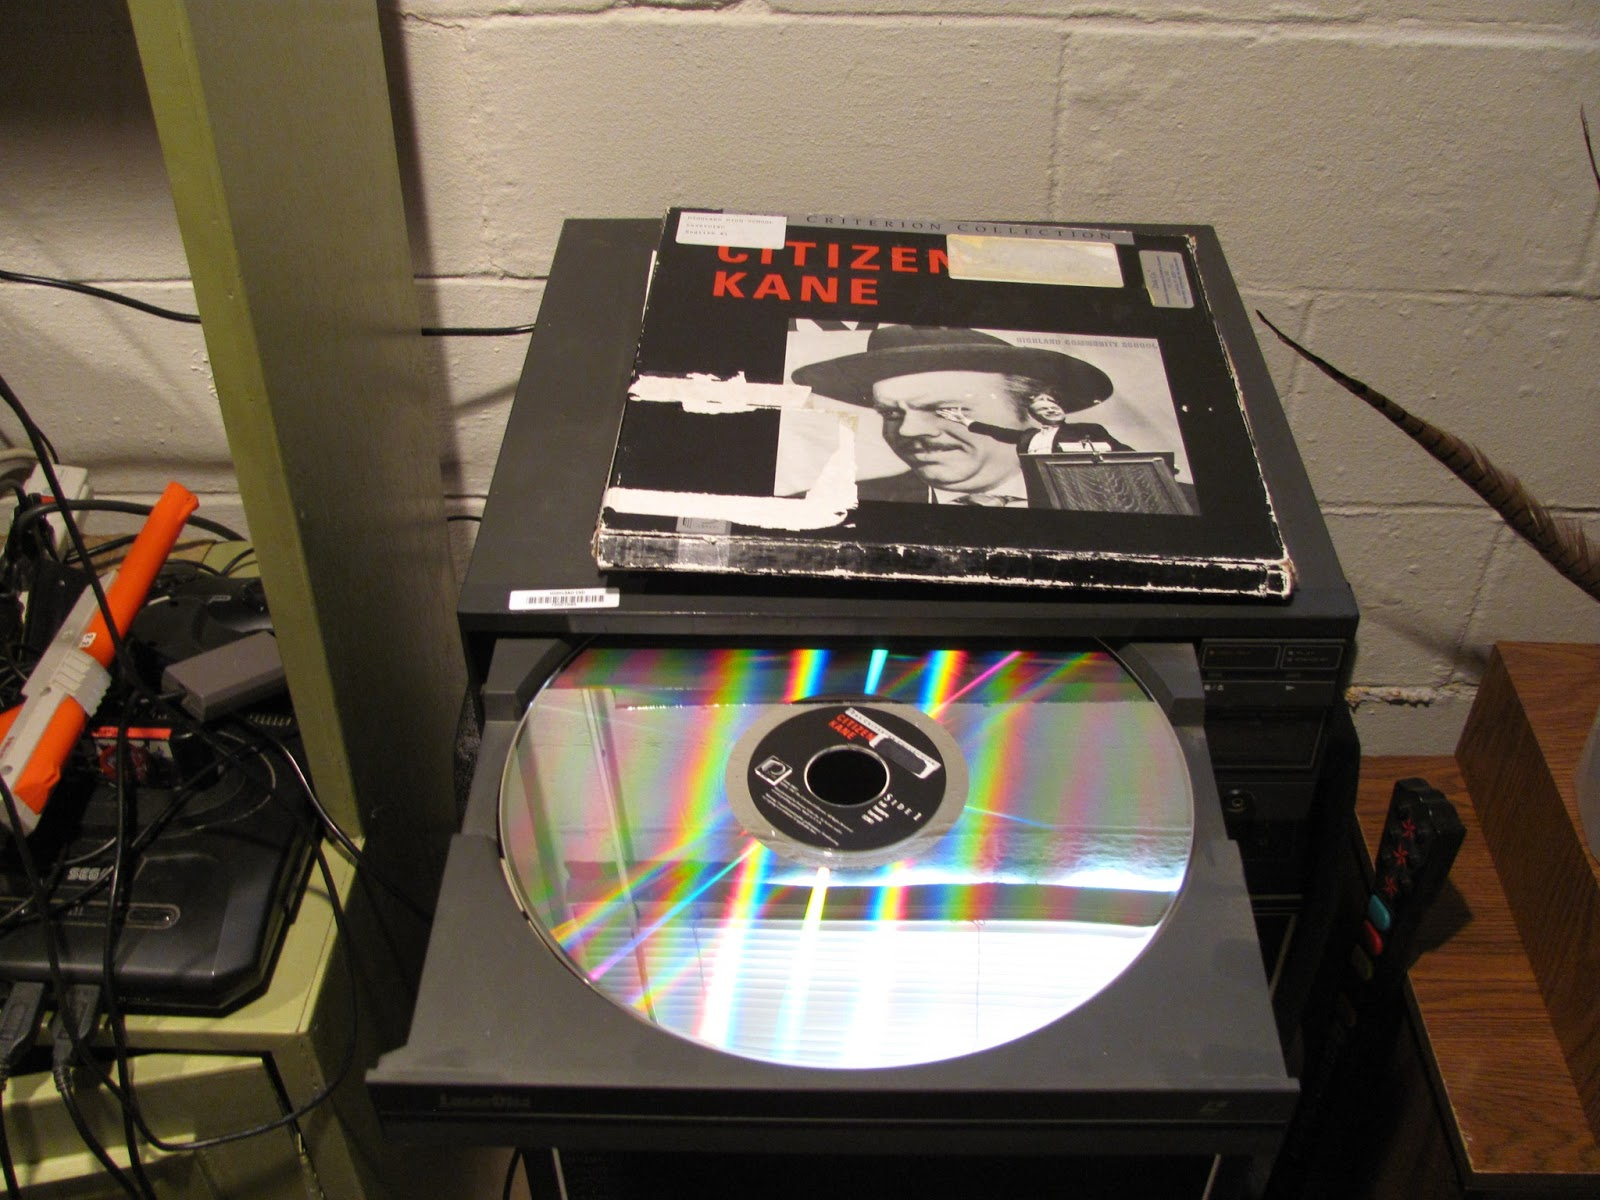 Laserdisc player on display with Citizen Kane before being sold on Craigslist